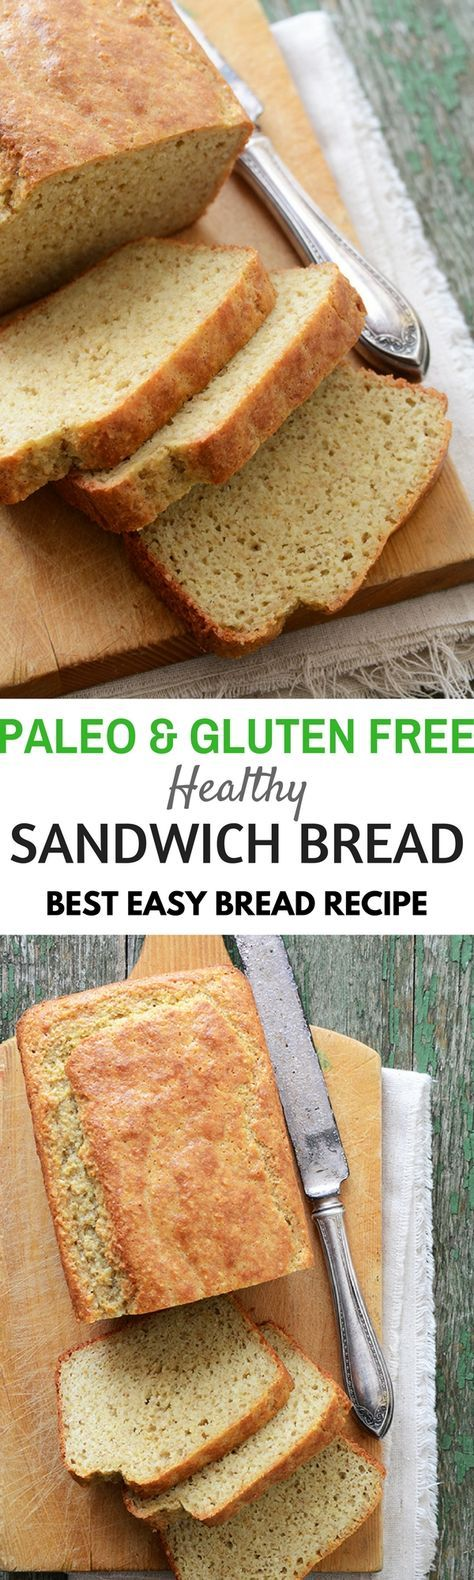 Best paleo sandwich bread. Healthy gluten free best bread recipes for the paleo diet.